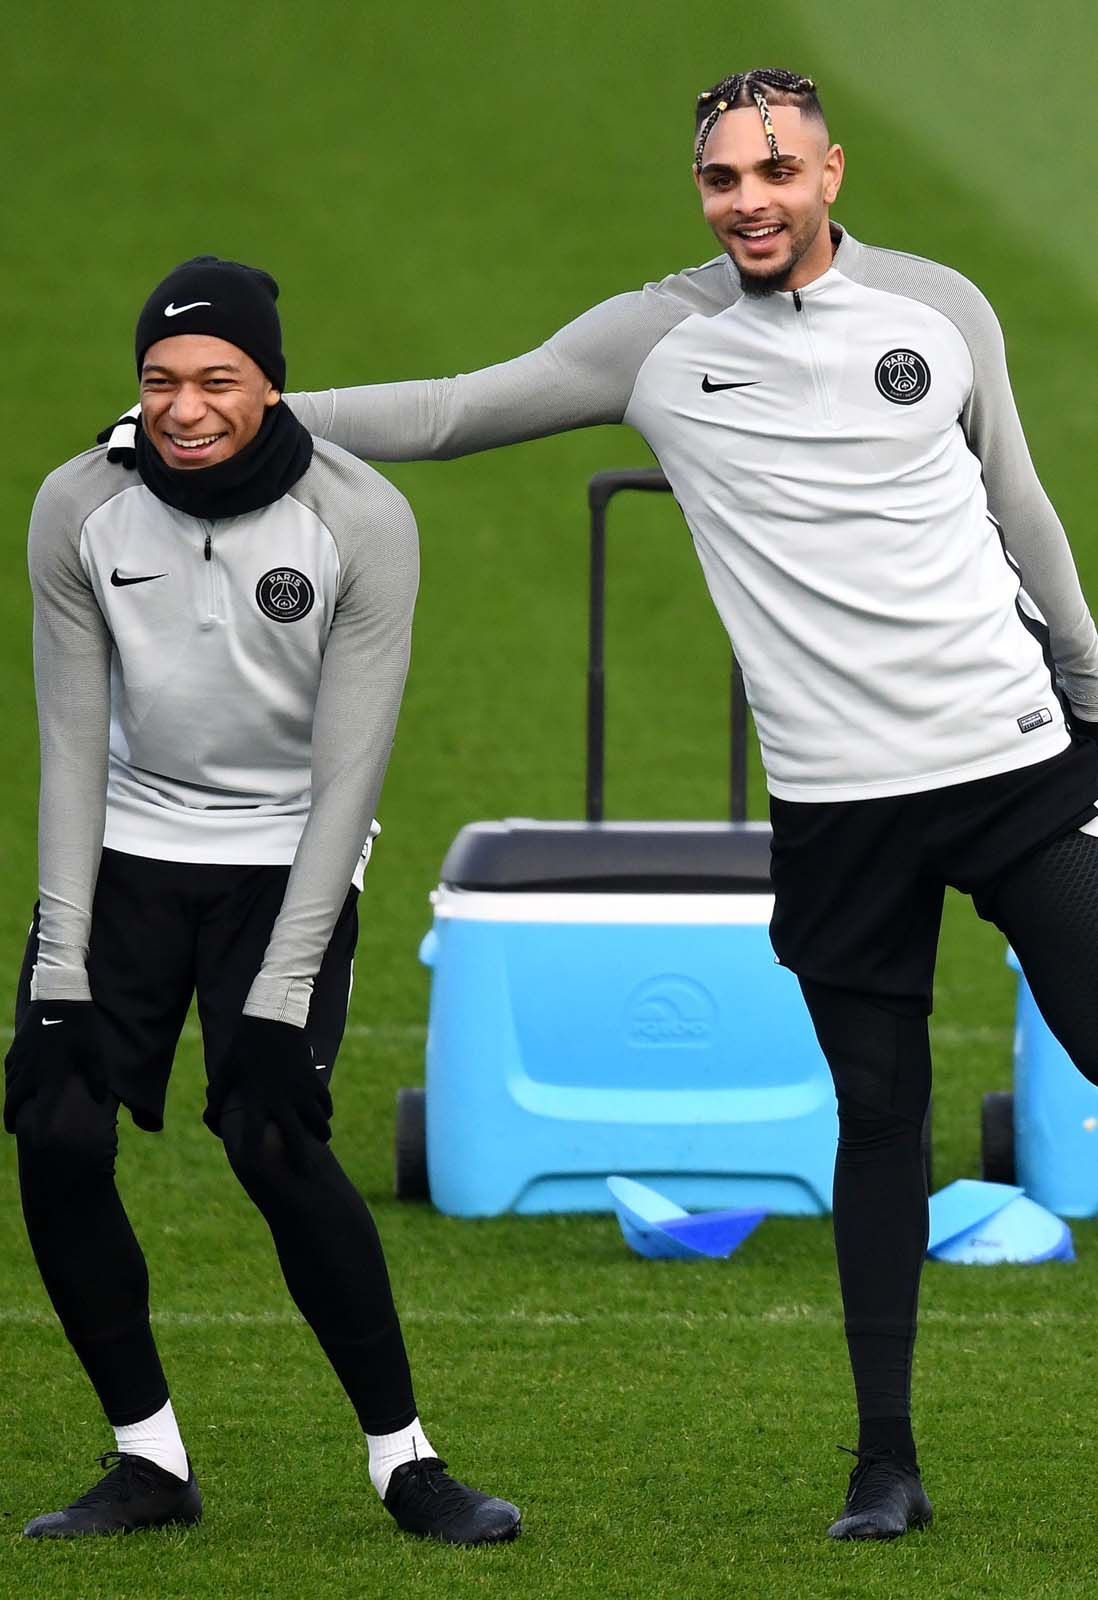 b1f19b1b063 kylian mbappe trains in blackout mercurial superfly – soccerbible. Download  Image 1098 X 1600